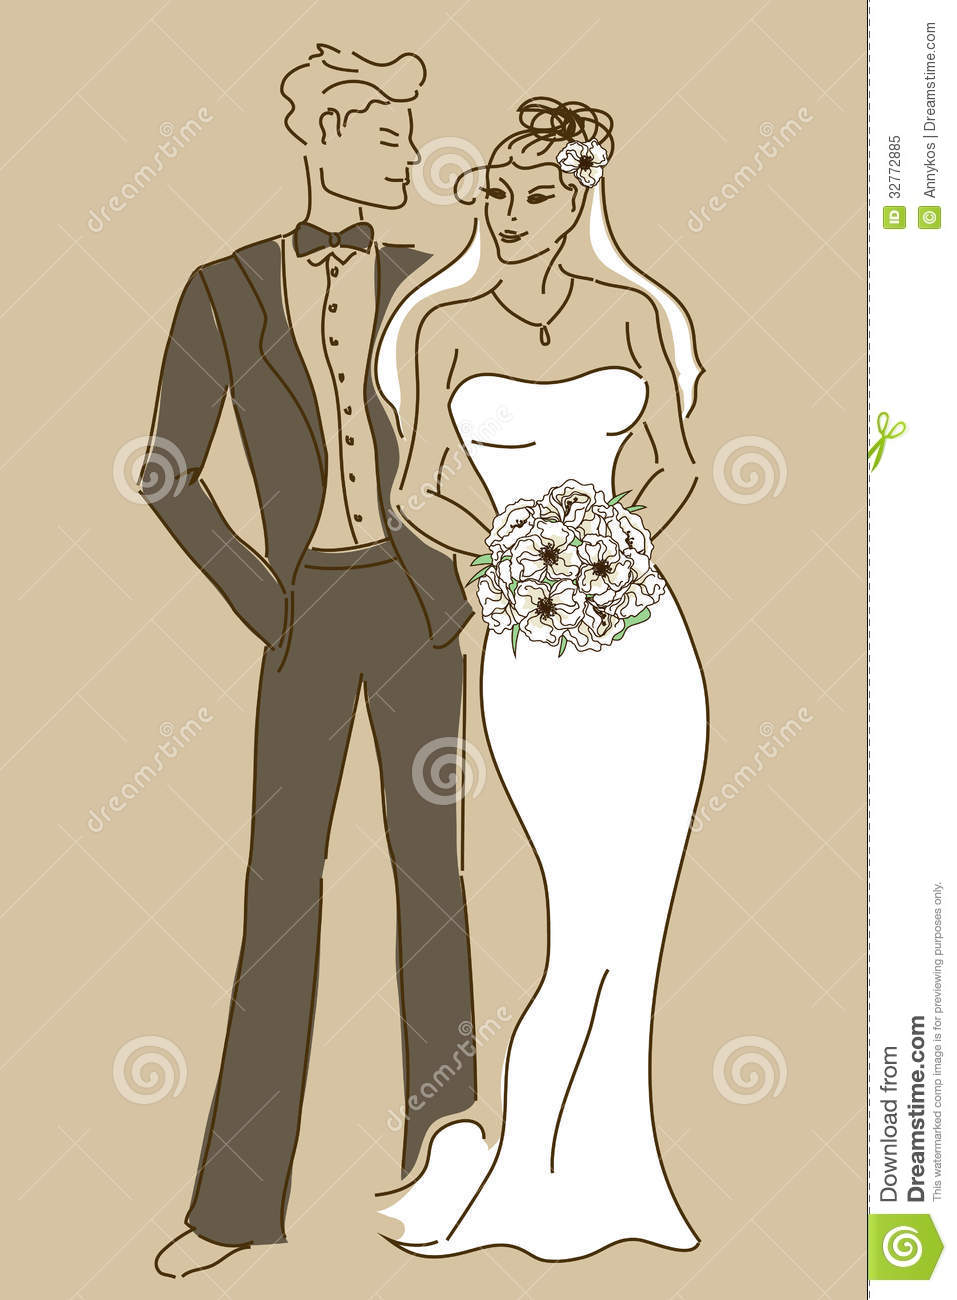 Wedding Card With Bride And Groom Royalty Free Stock Photo